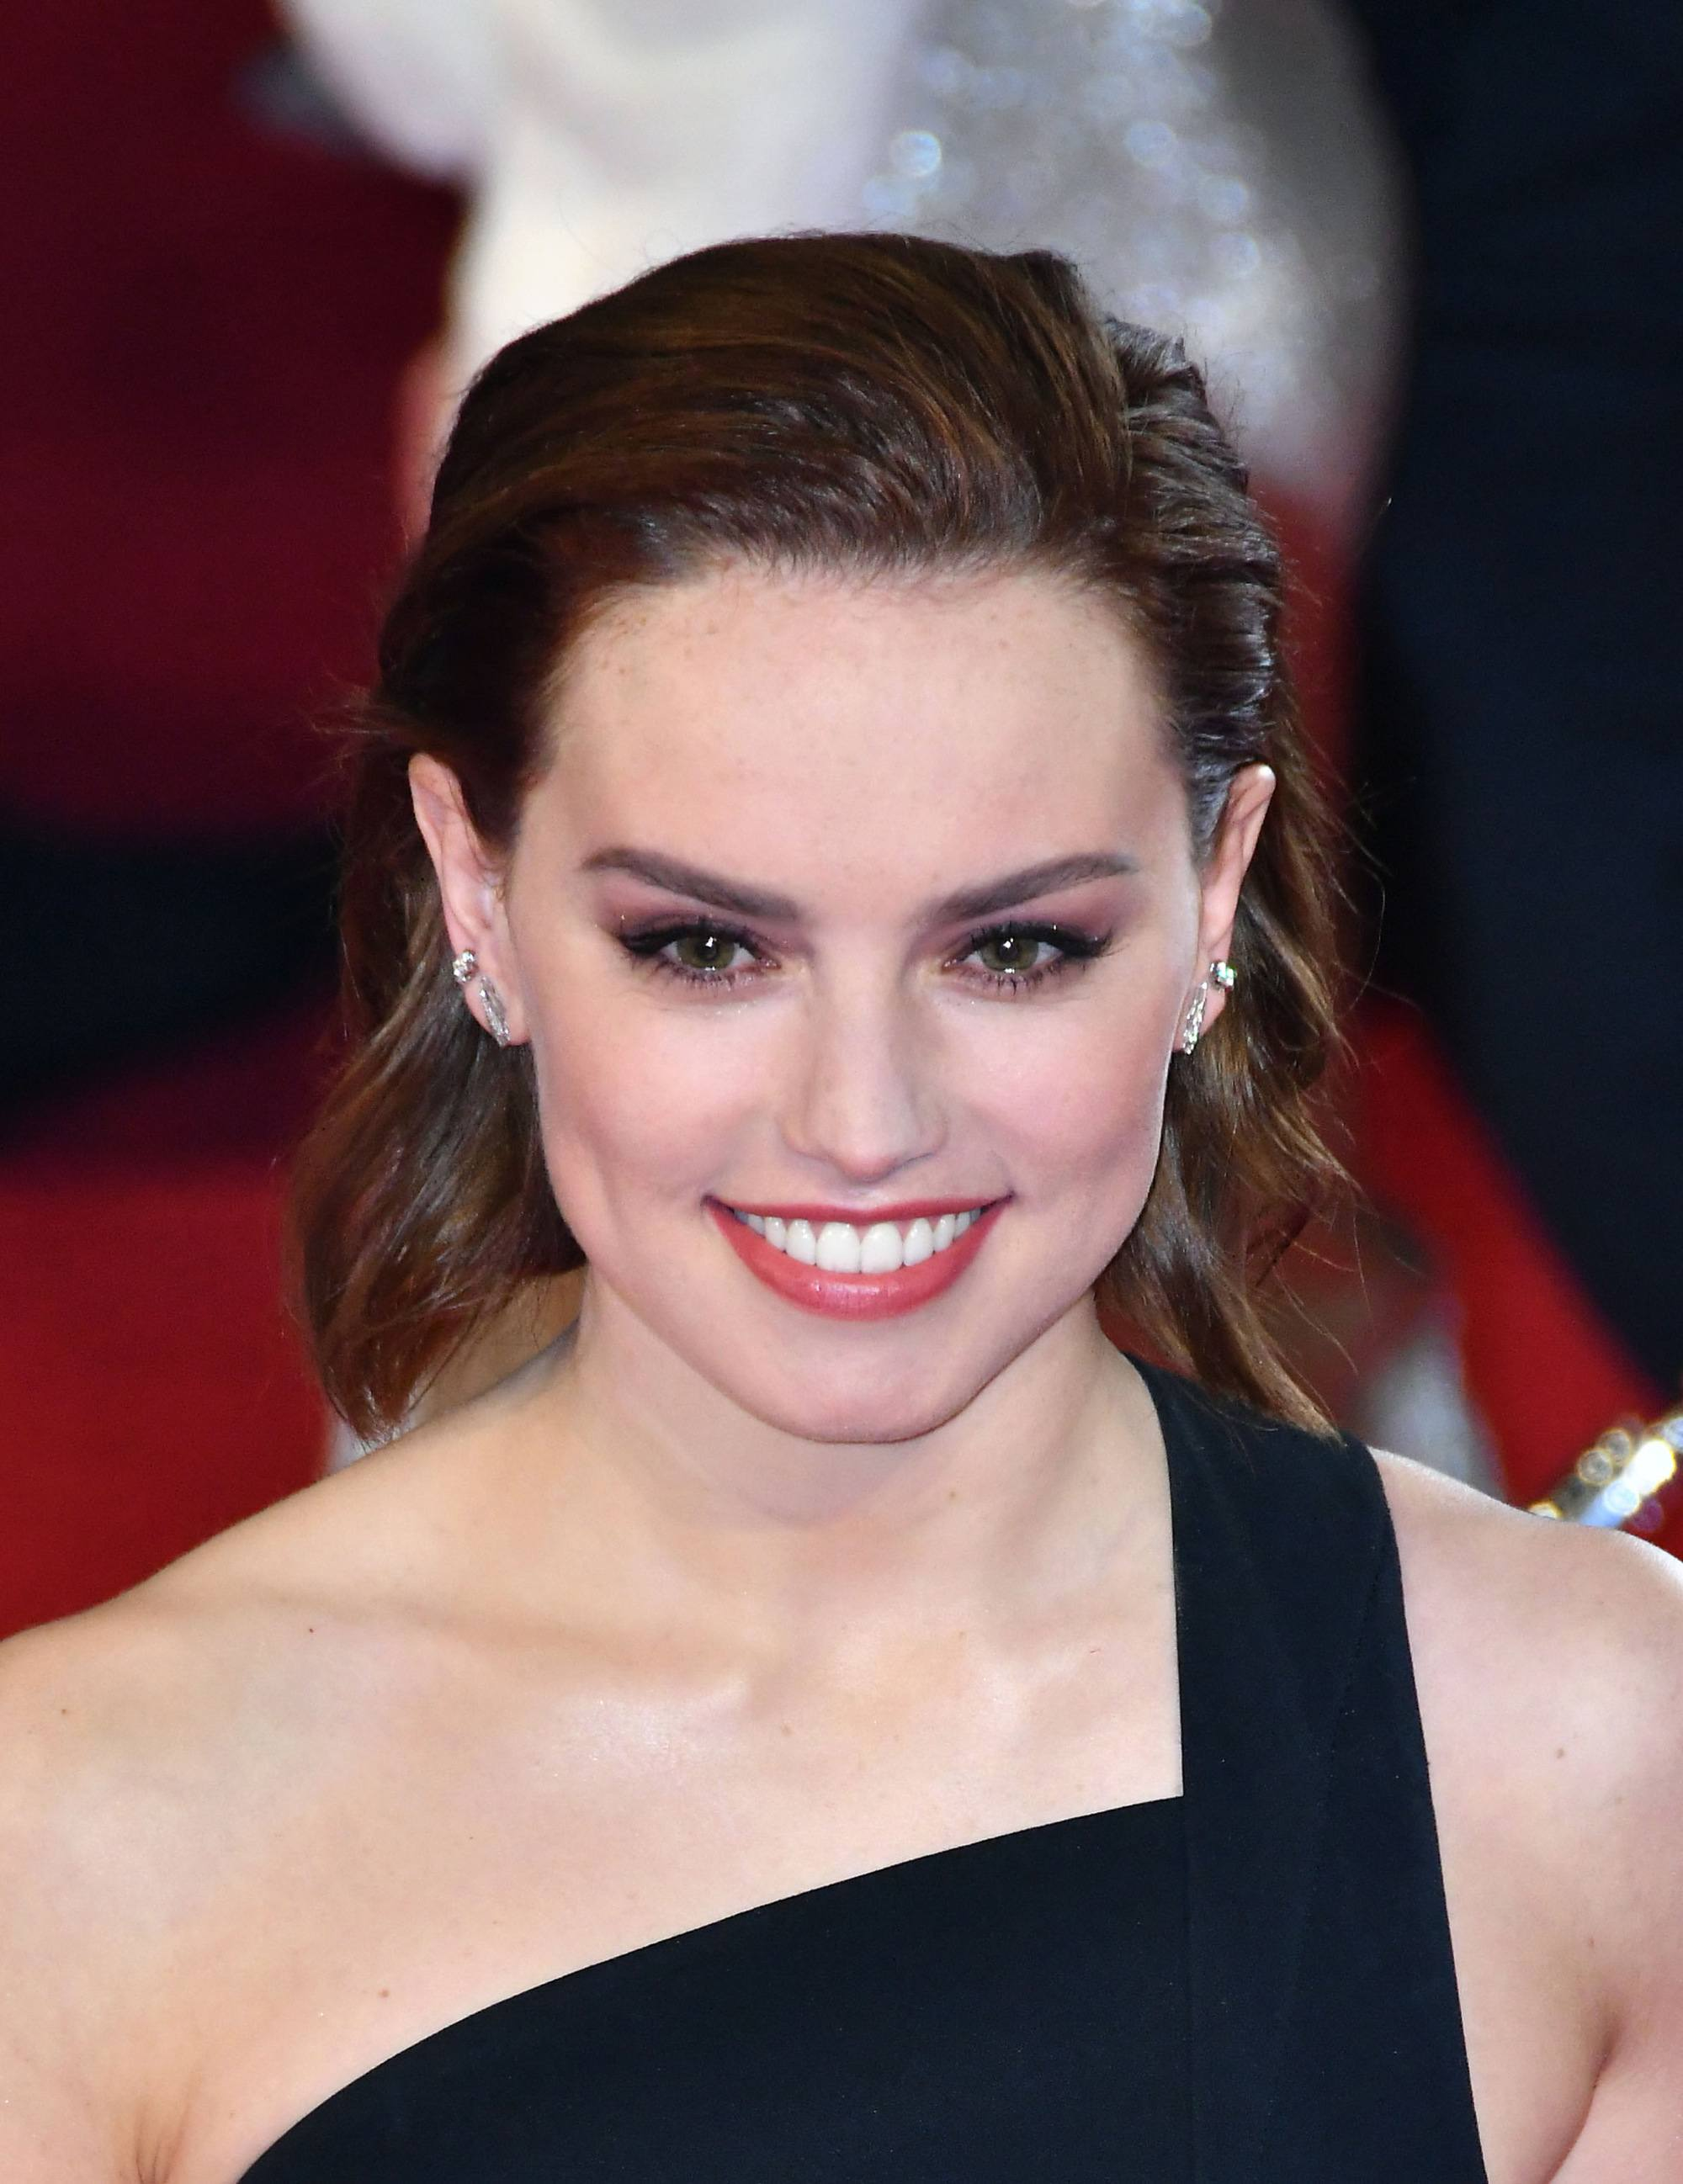 Daisy Ridley in black dress with her brunette hair slicked back